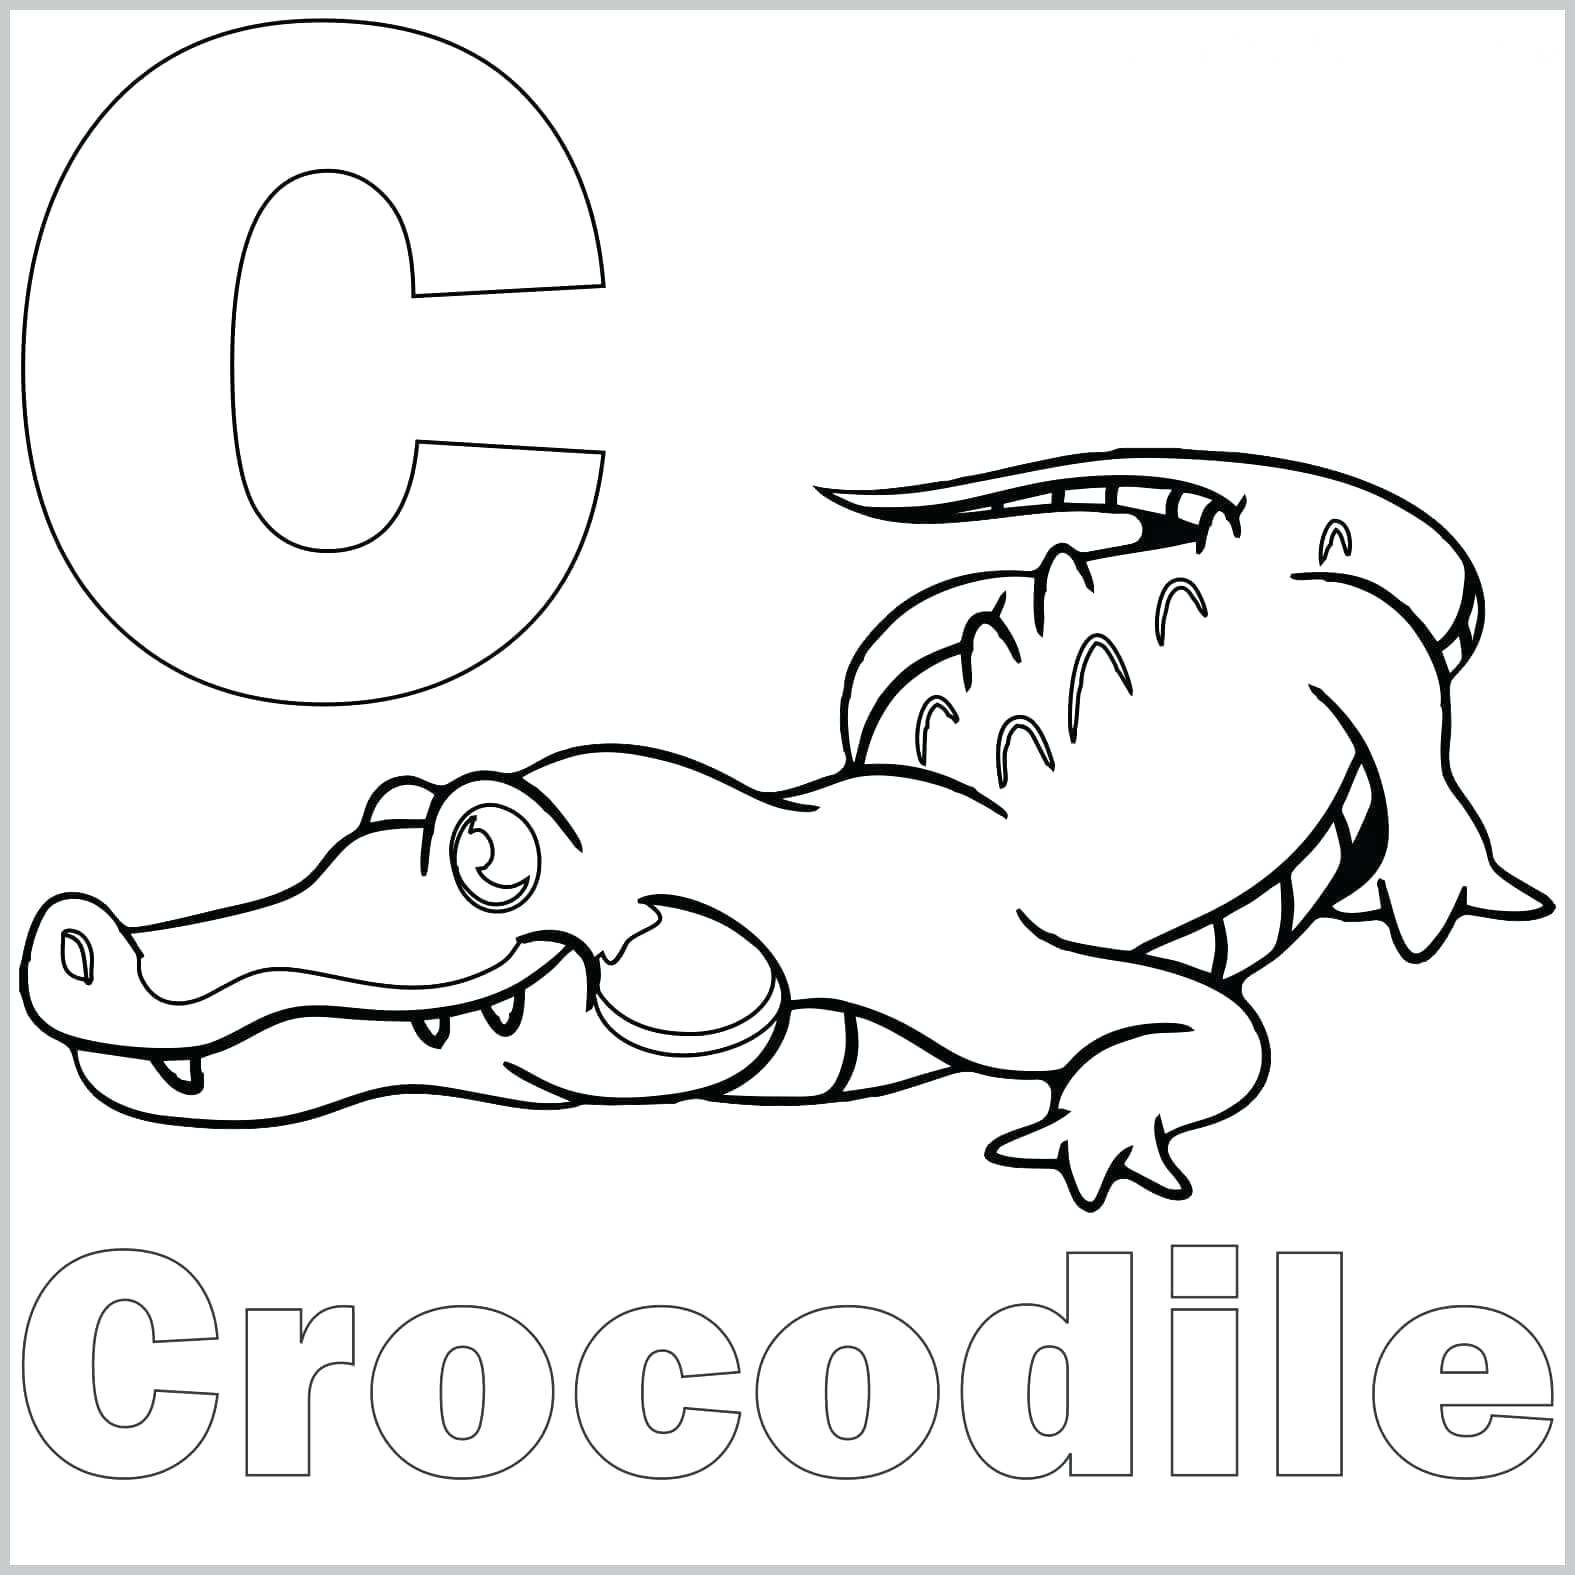 Top 30 Wicked Alligator Coloring Pages For Kids Printable Image Coloring Home